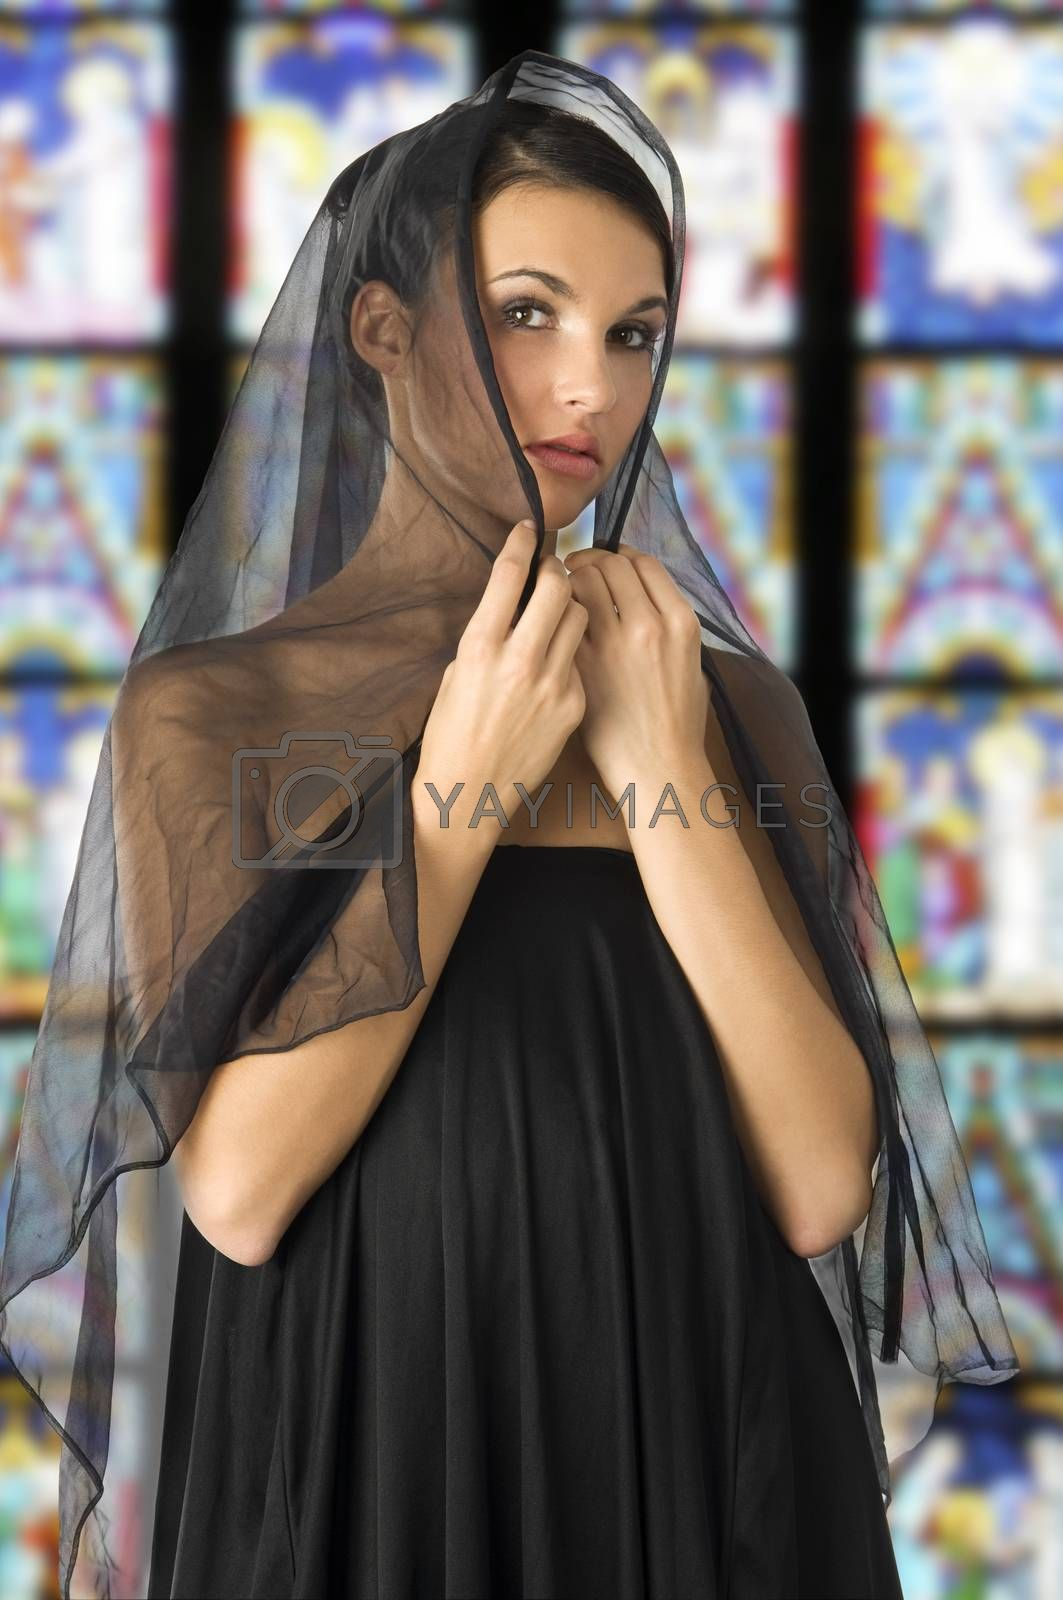 Royalty free image of black veil by fotoCD